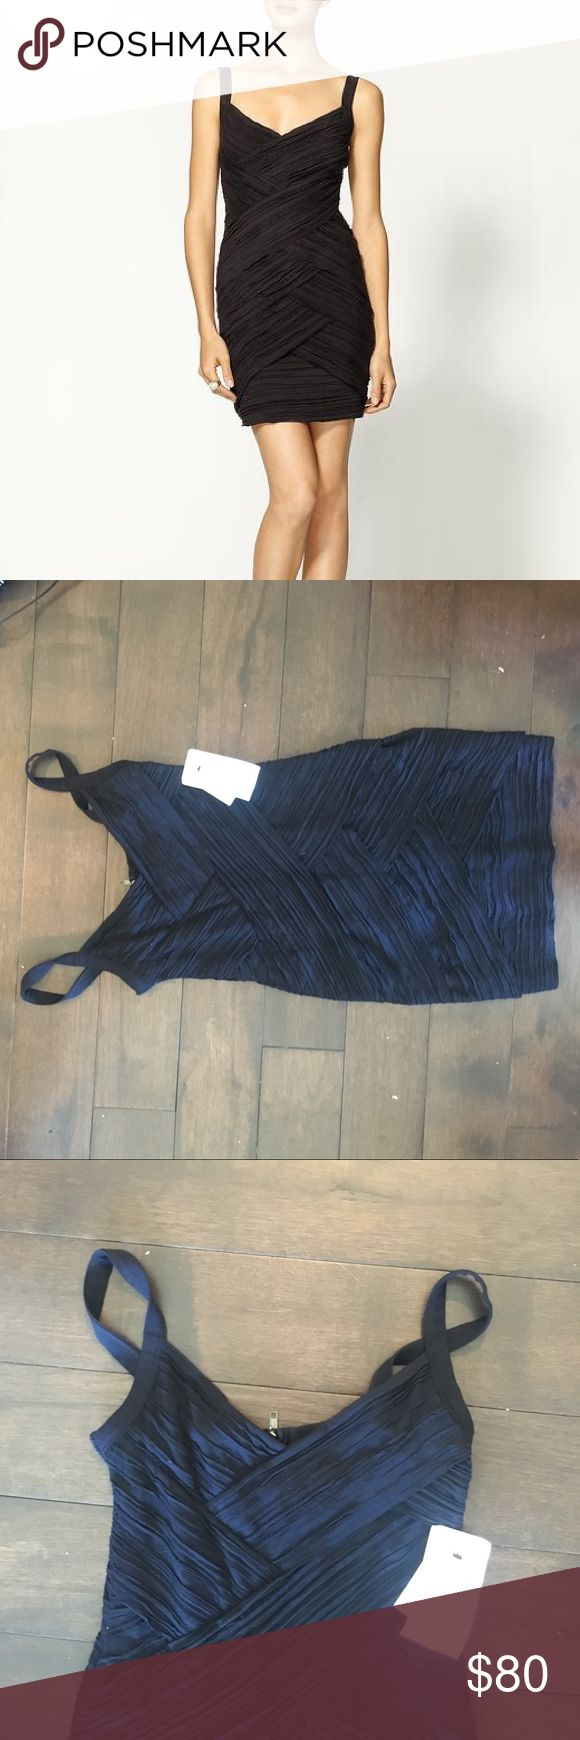 NWT Bailey 44 Mayhem Bandage Dress (NAVY) BEAUTIFUL dress for any fancy occasion or night out. Is a dark navy and fits snug and sexy. Super soft and zips in back. Make offers!!! Bailey 44 Dresses